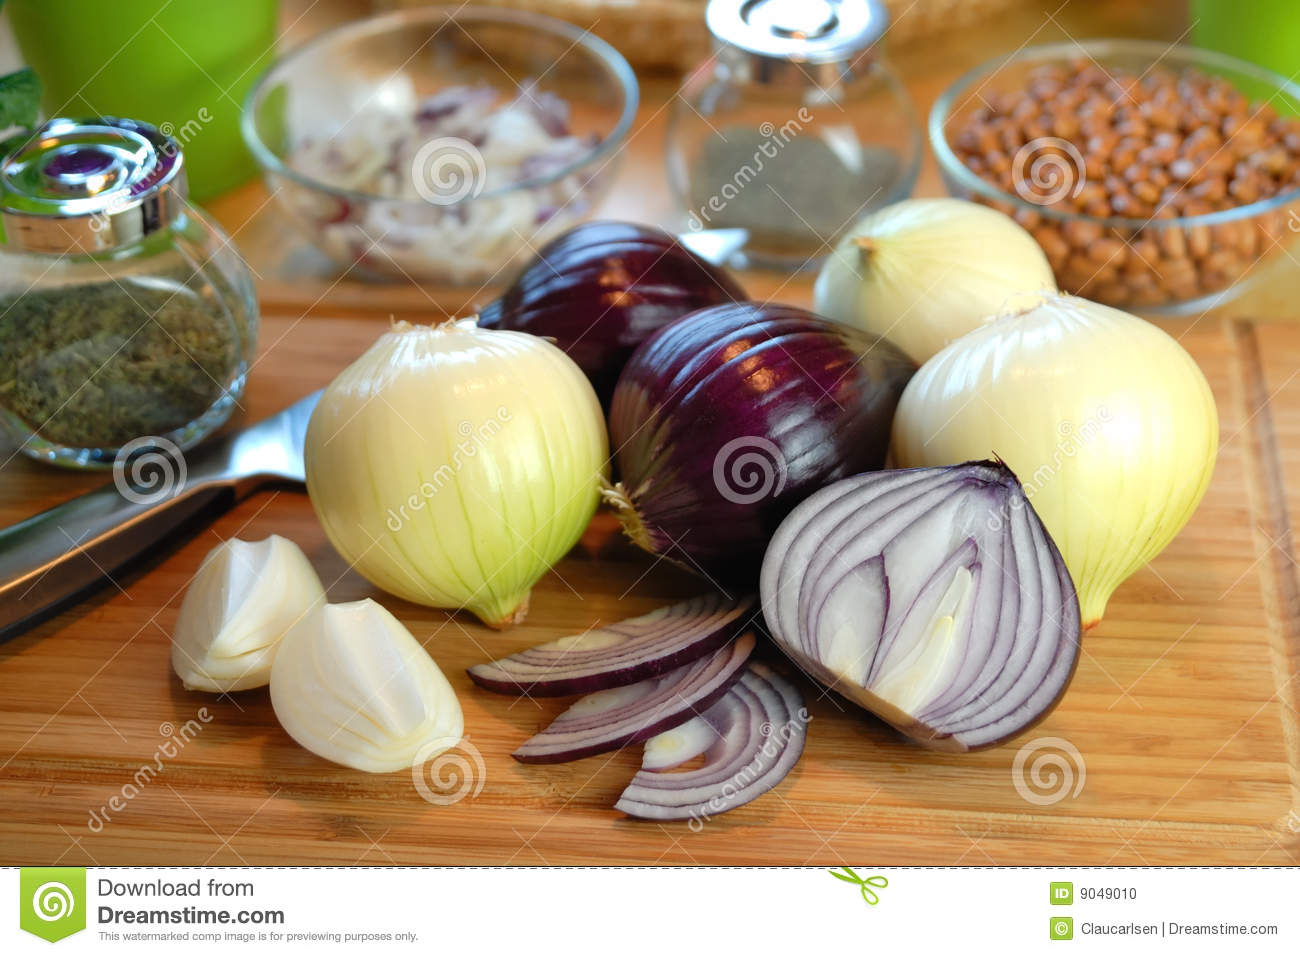 how to make onion stock